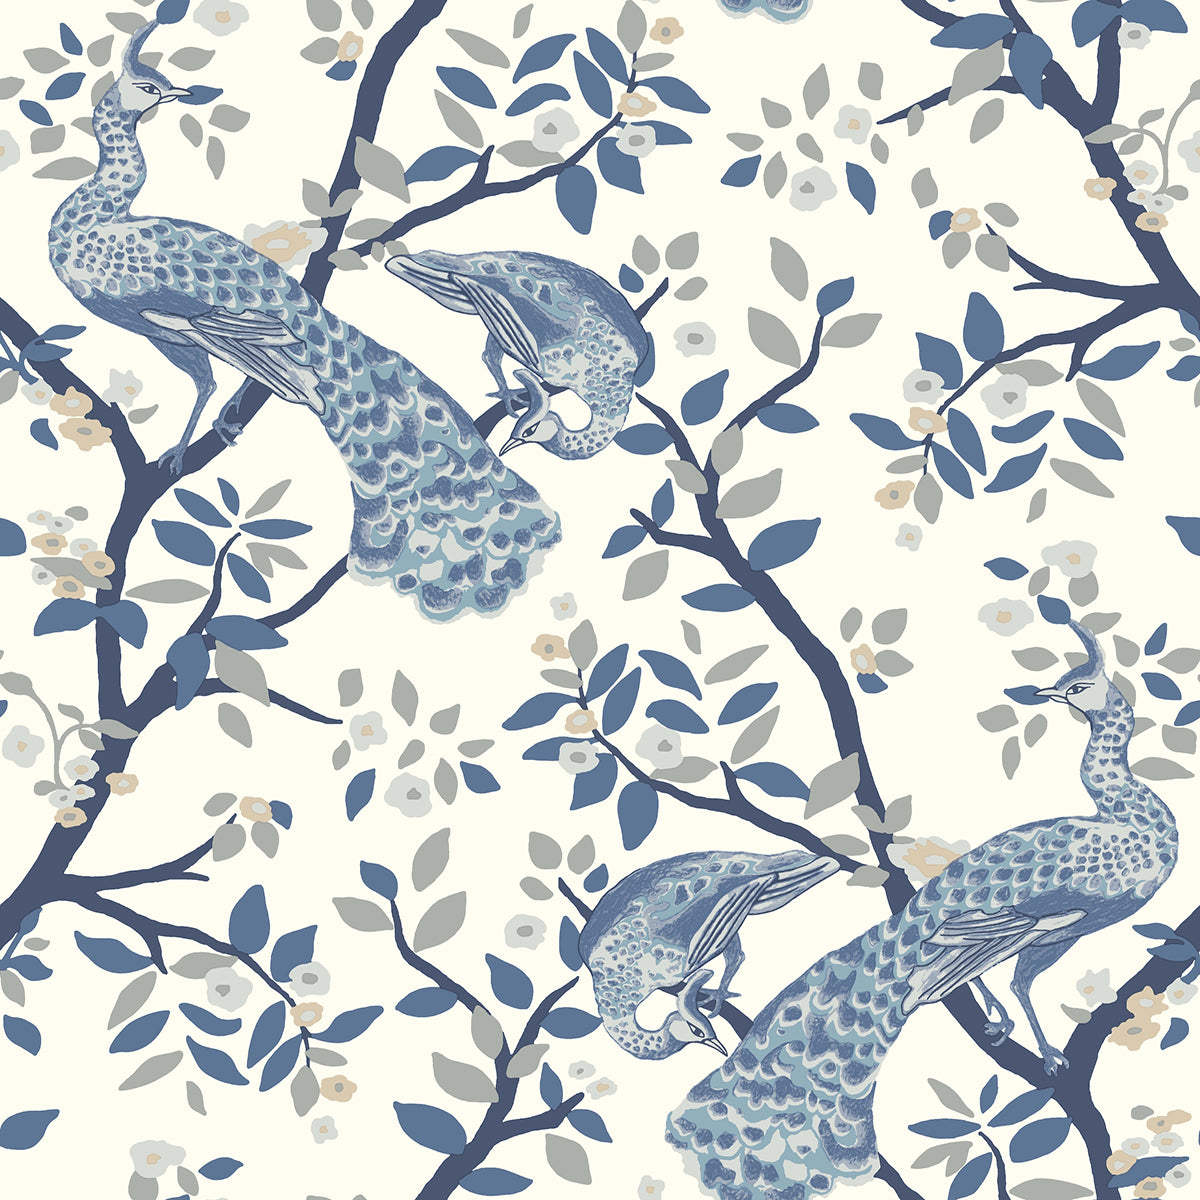 Dwell Studio Plume Wallpaper - Blues in Blue